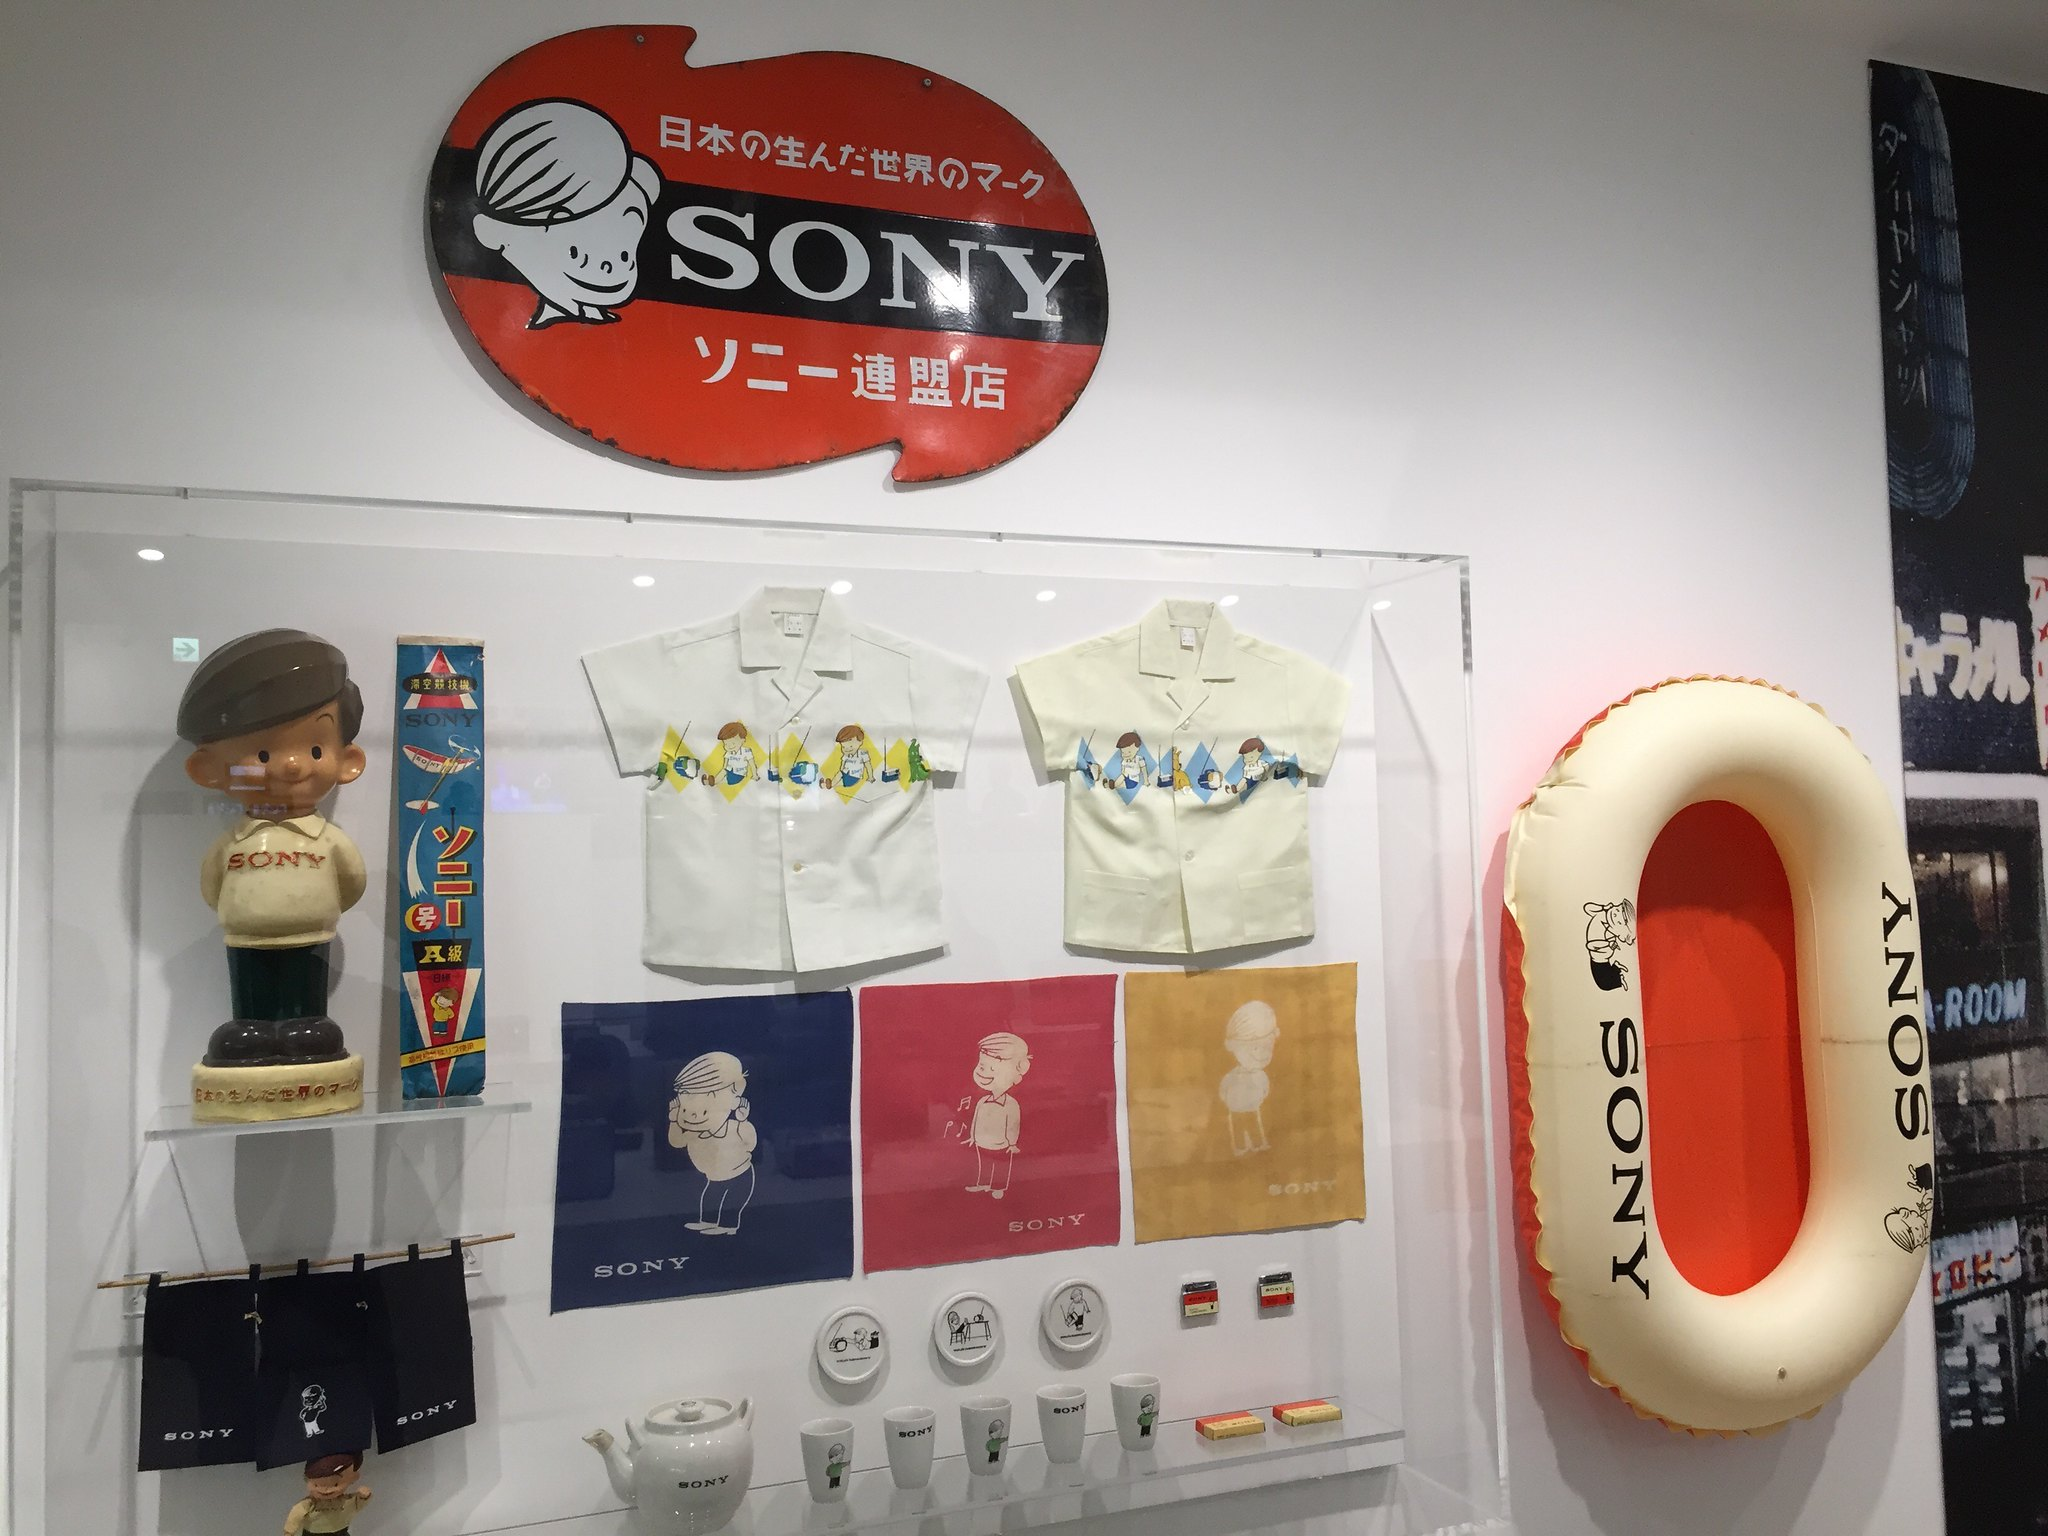 It's a Sony展